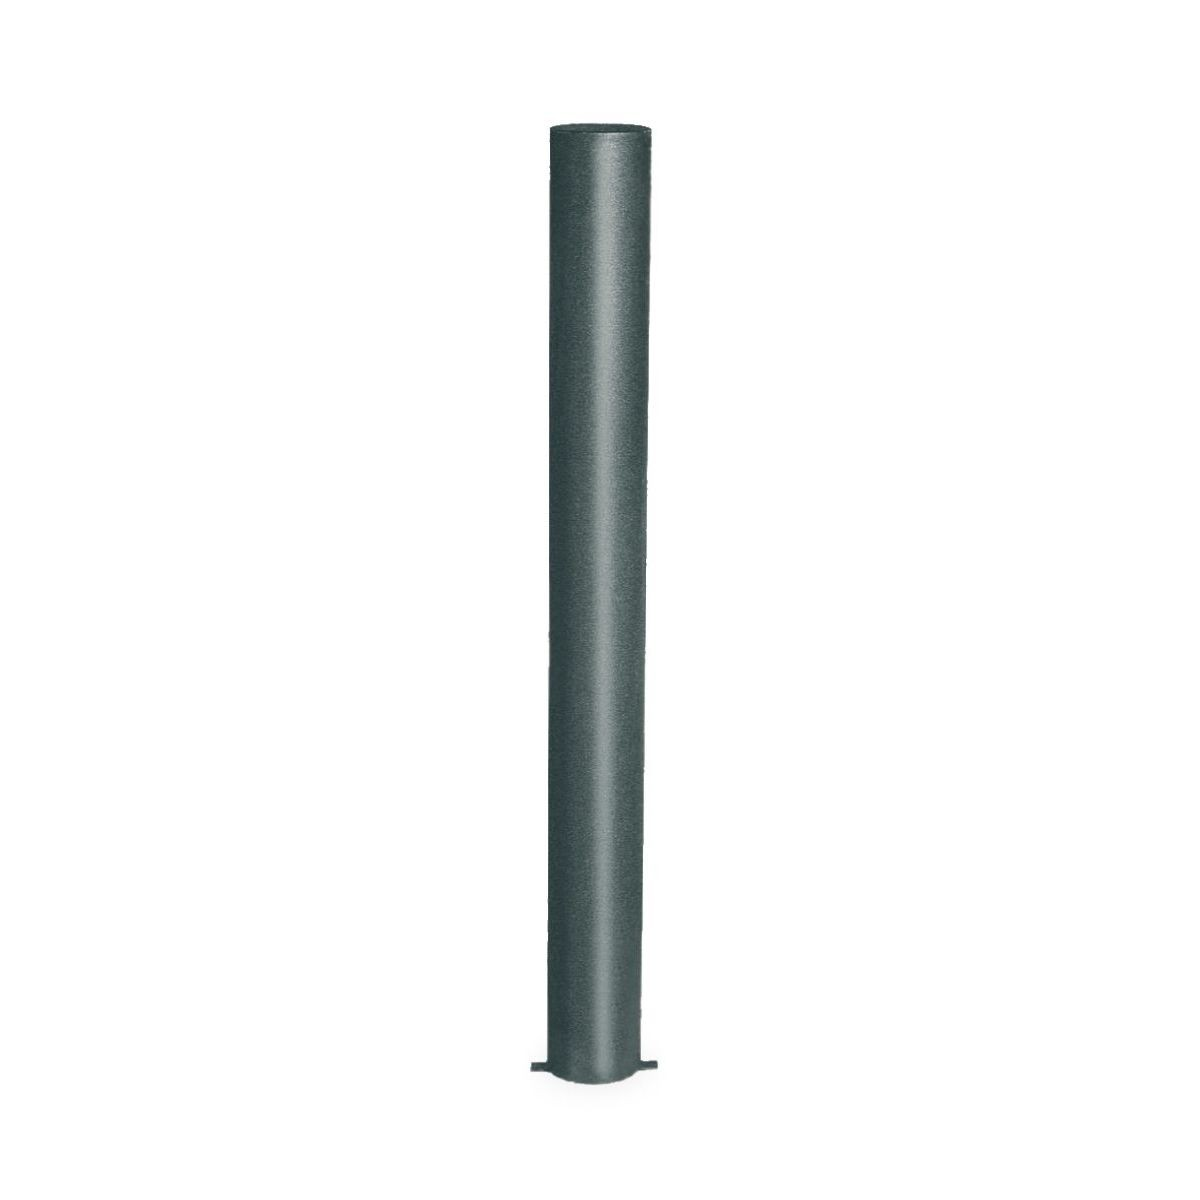 Pilona Tub de 1006 mm d'alt - C-502